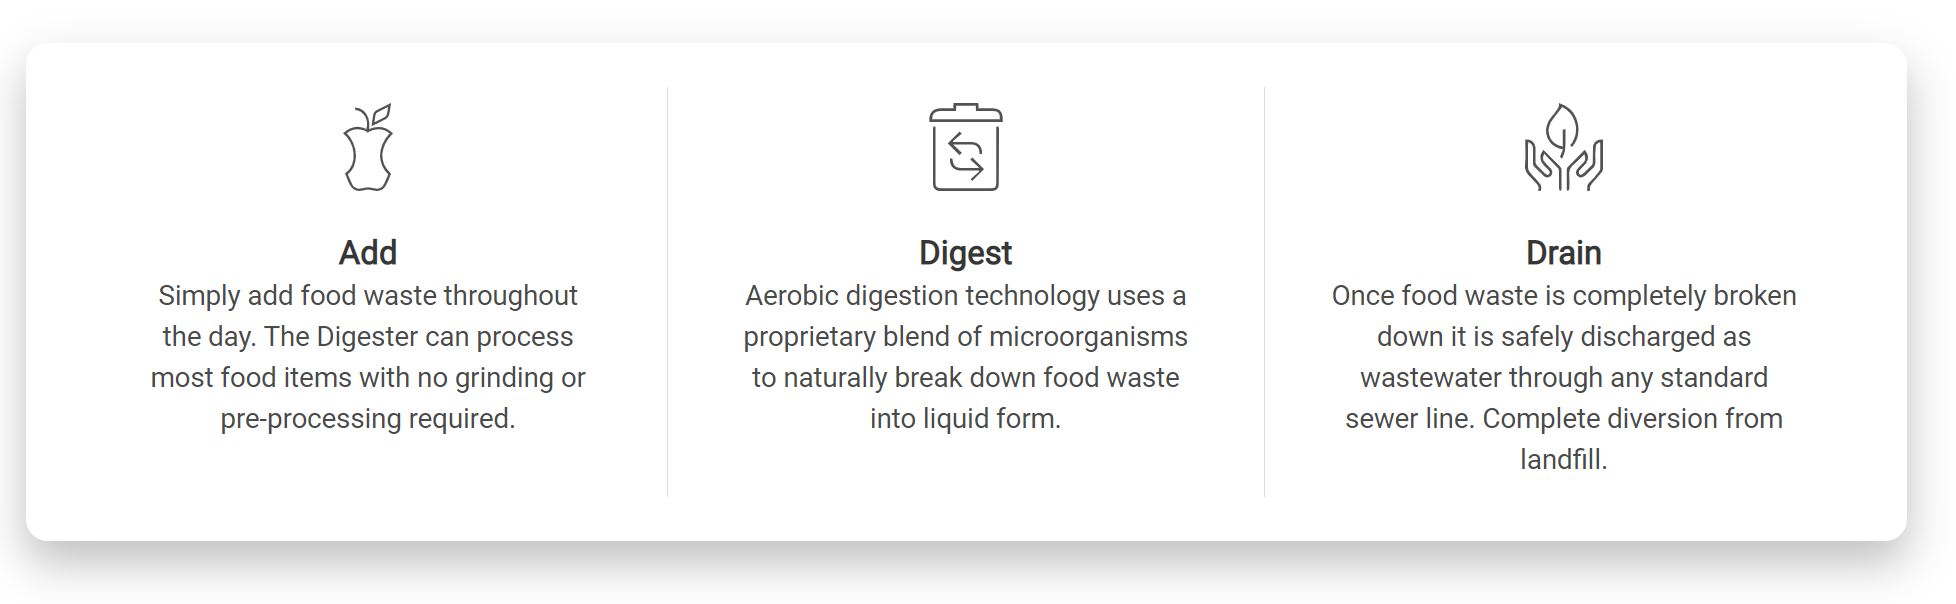 Divert food waste